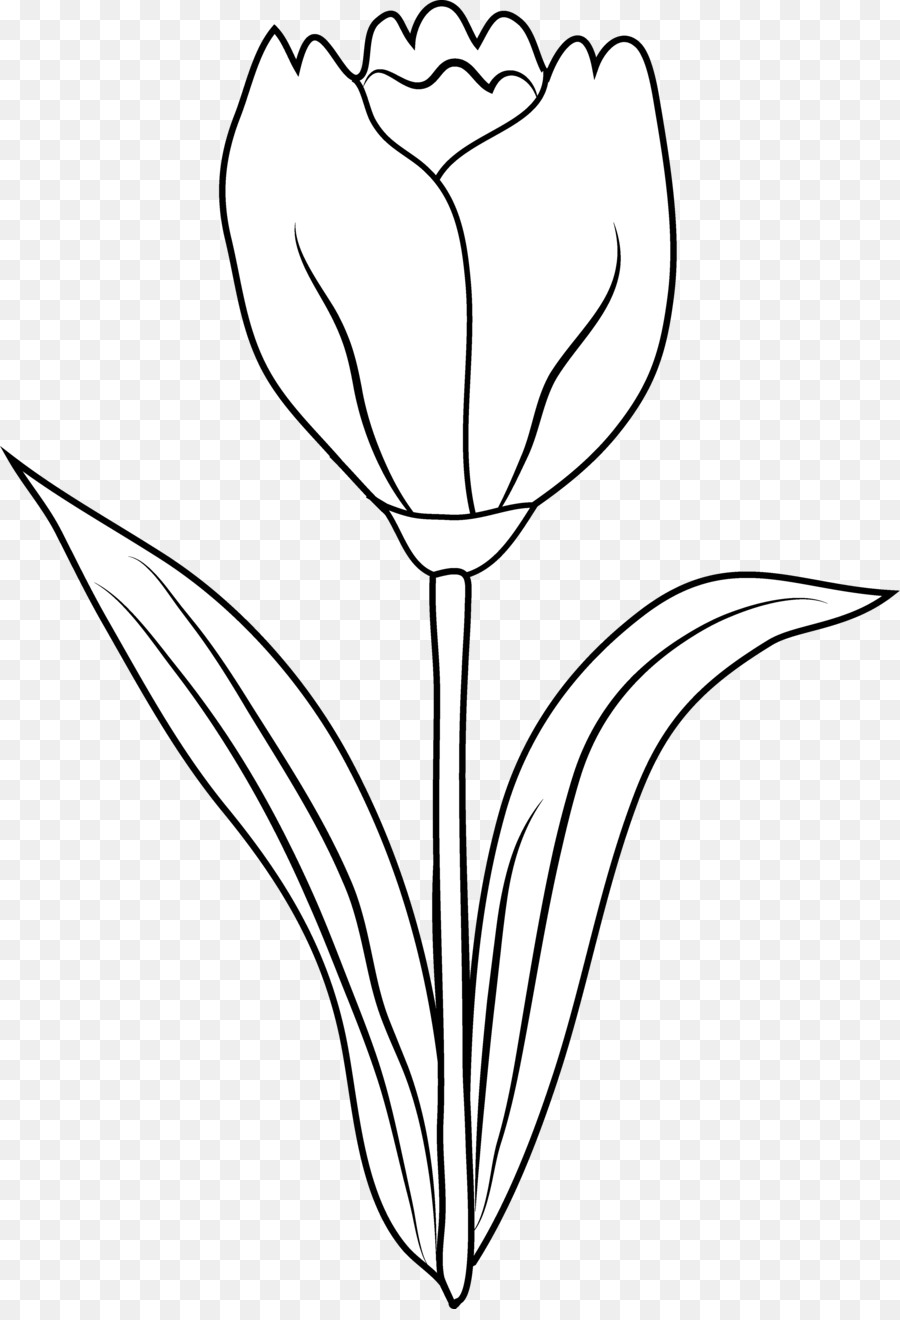 Tulip clipart black and white 4 » Clipart Station.